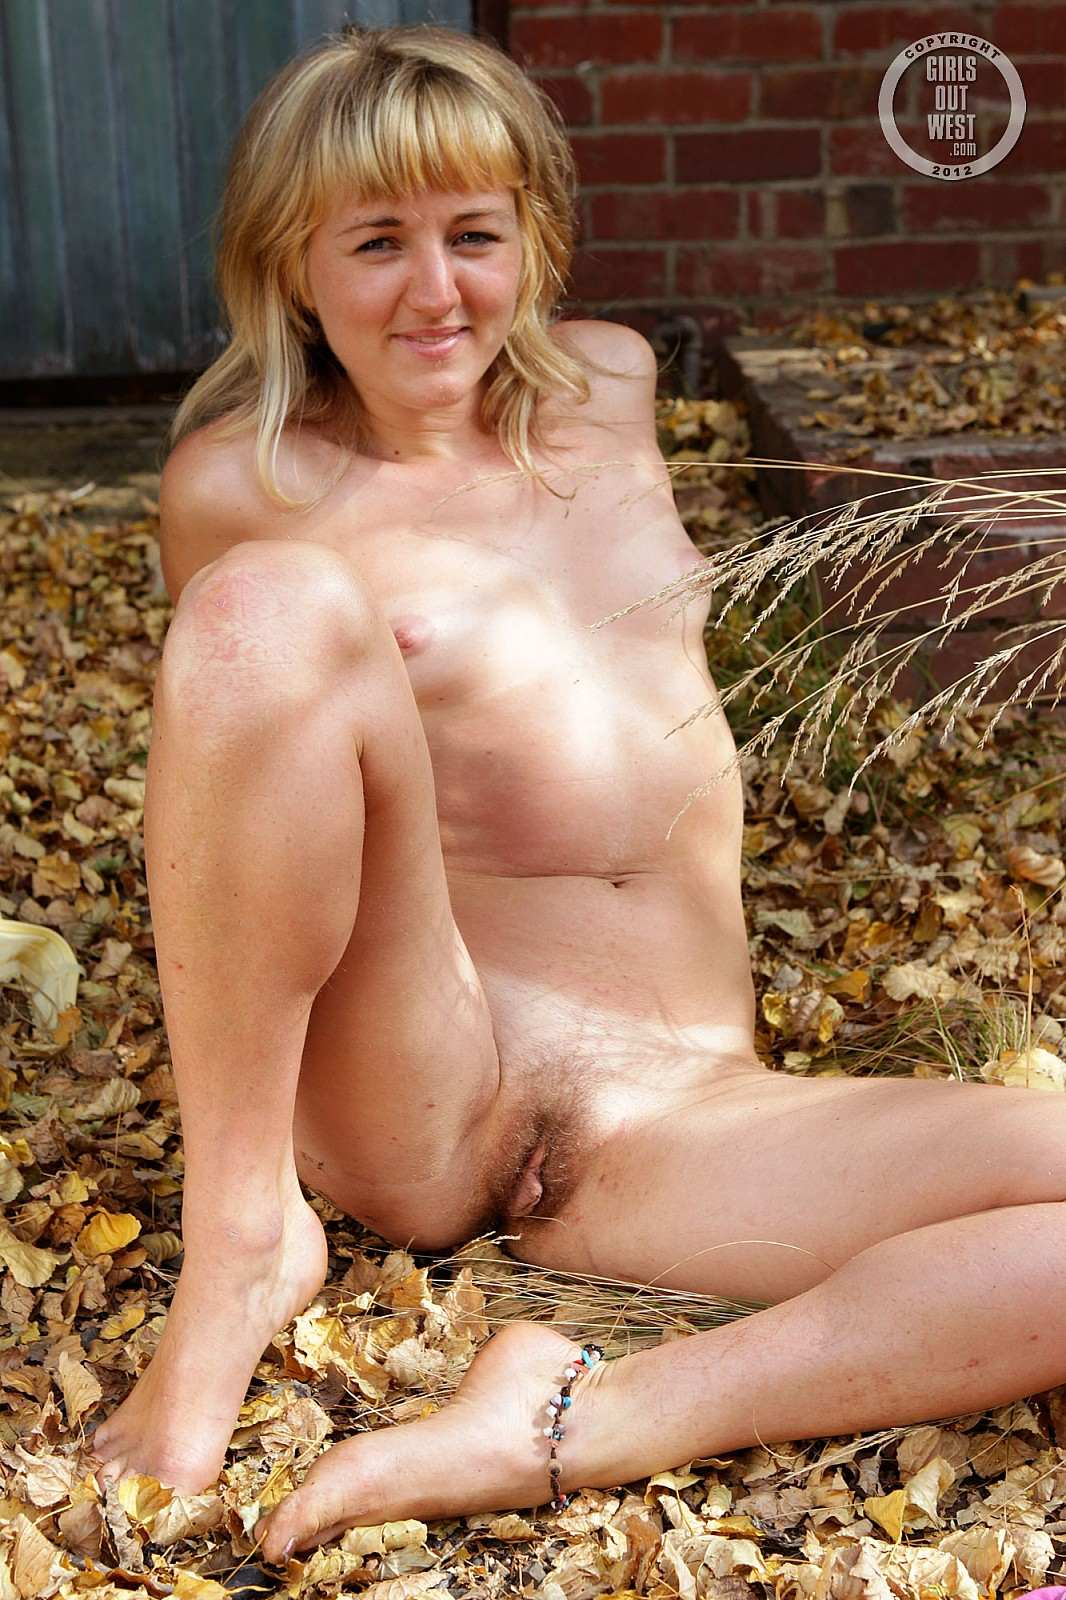 Amateur girls adelaide australia nude, ugly woman mature sex